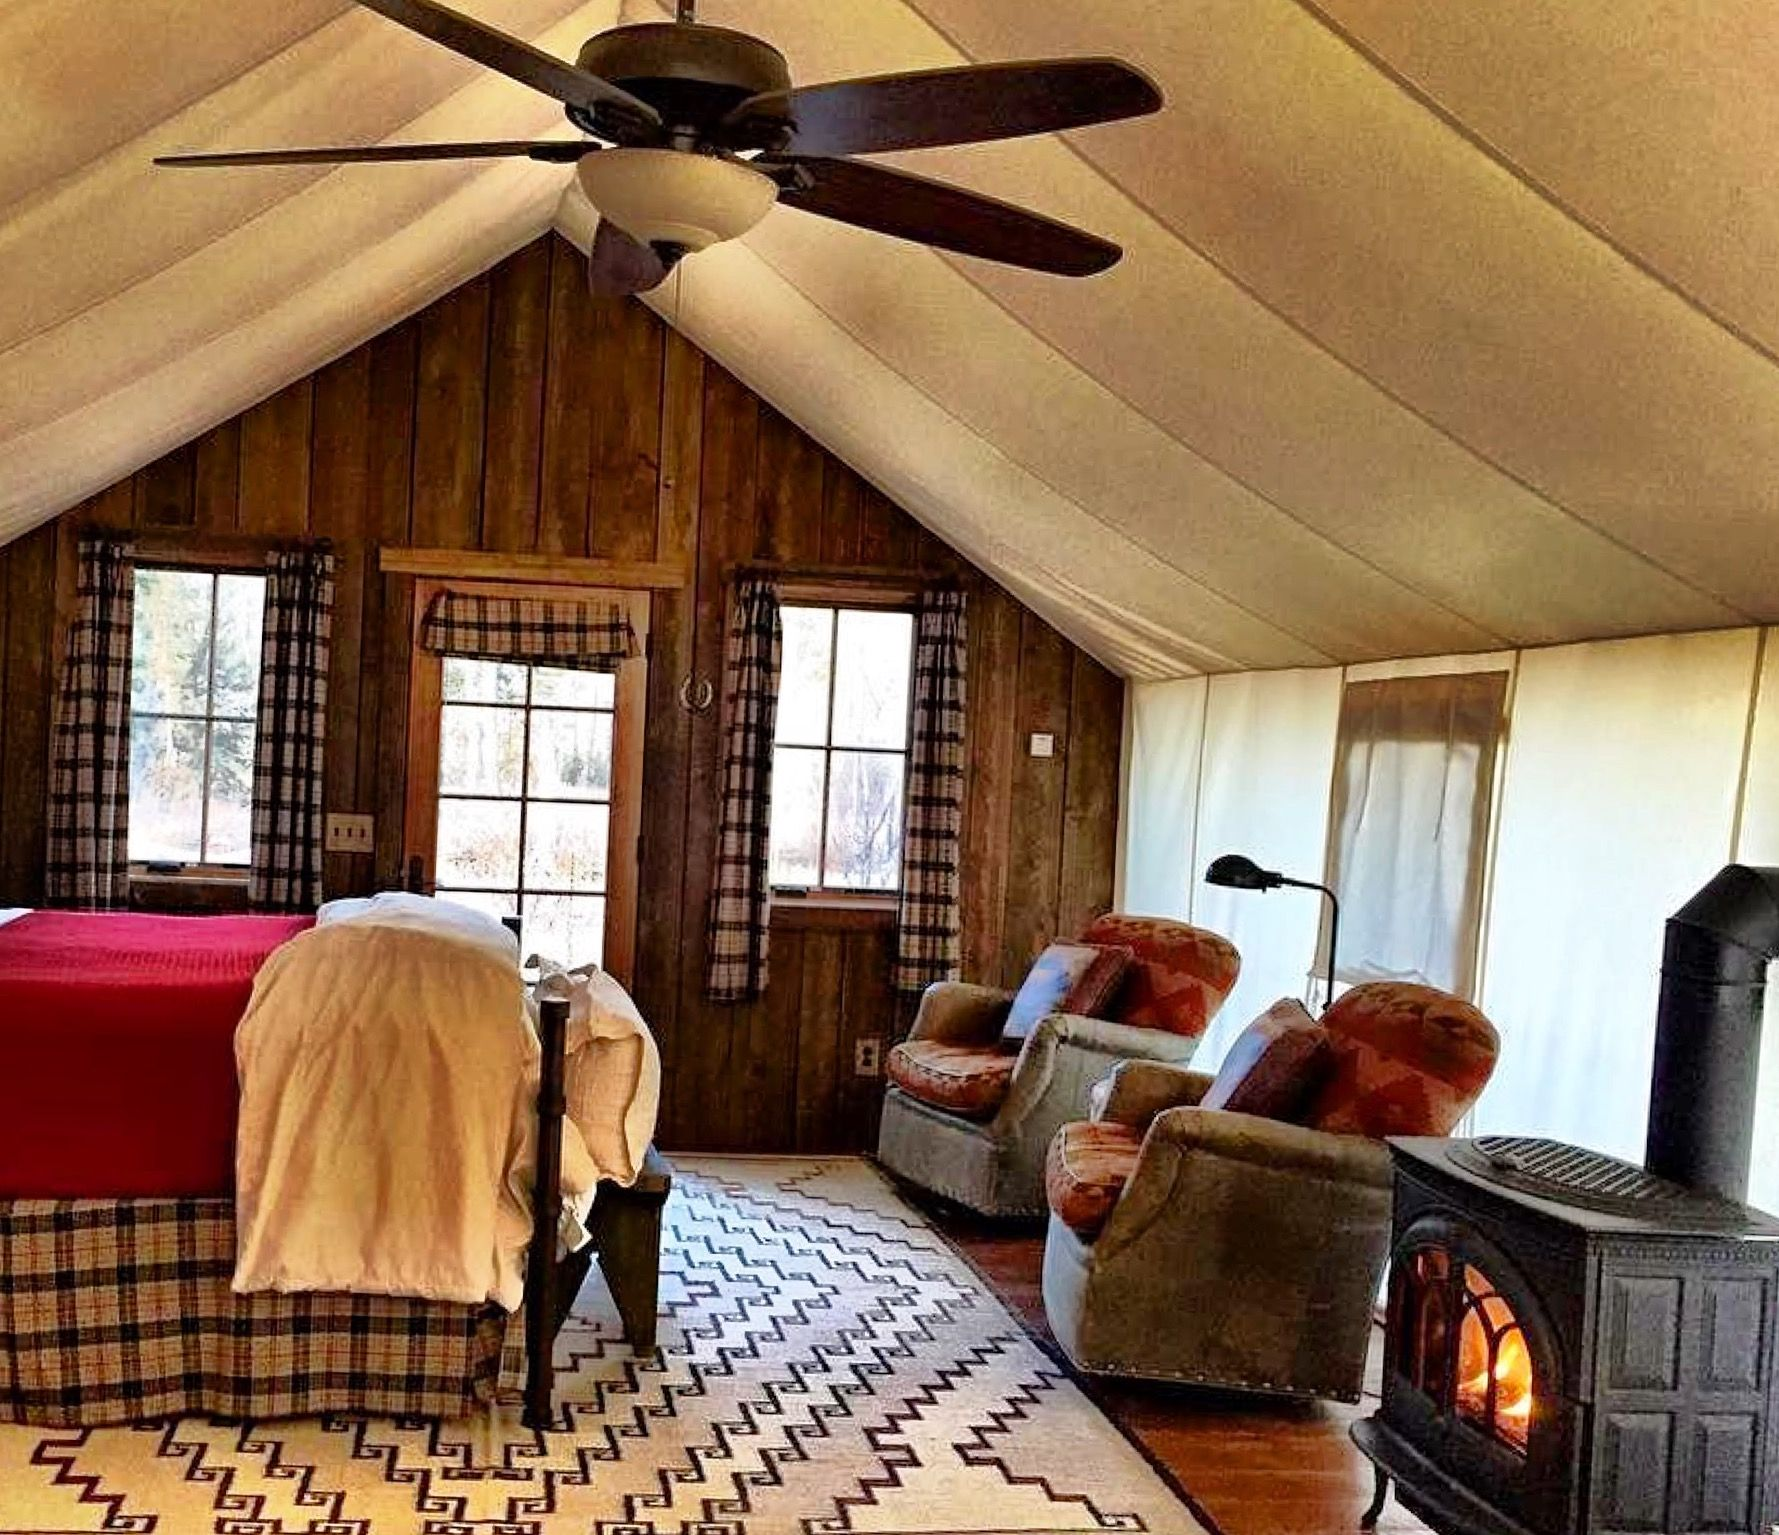 Thanksgiving glamping in Sweet Grass Canvas Cabin. We're thankful for a cozy bed and the relaxing sounds of Rock Creek singing us to sleep.  Photo by Jessica Cook.